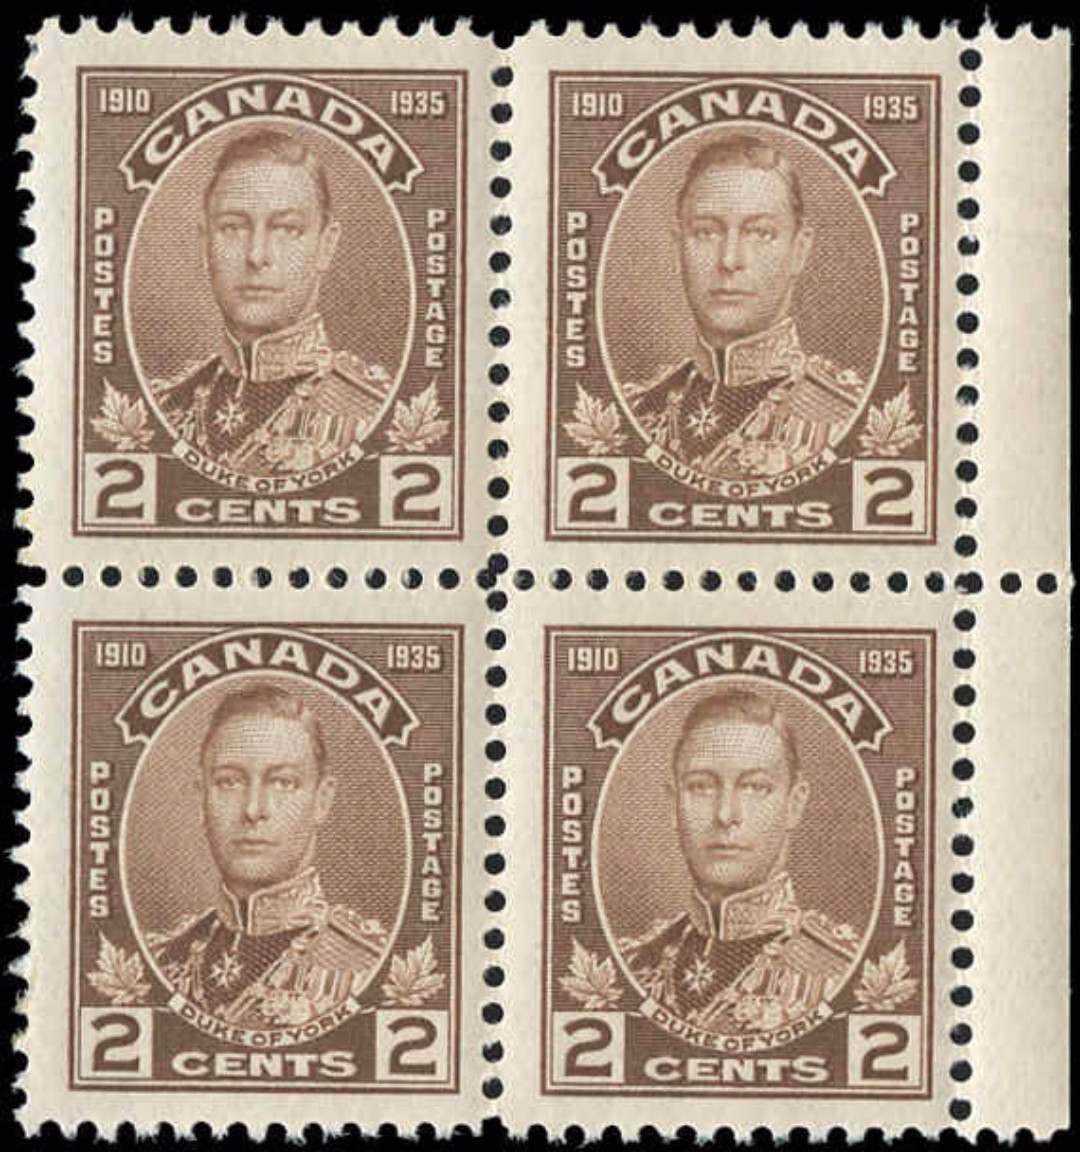 Canada #212, Silver Jubilee Issue, F-VF, MNH